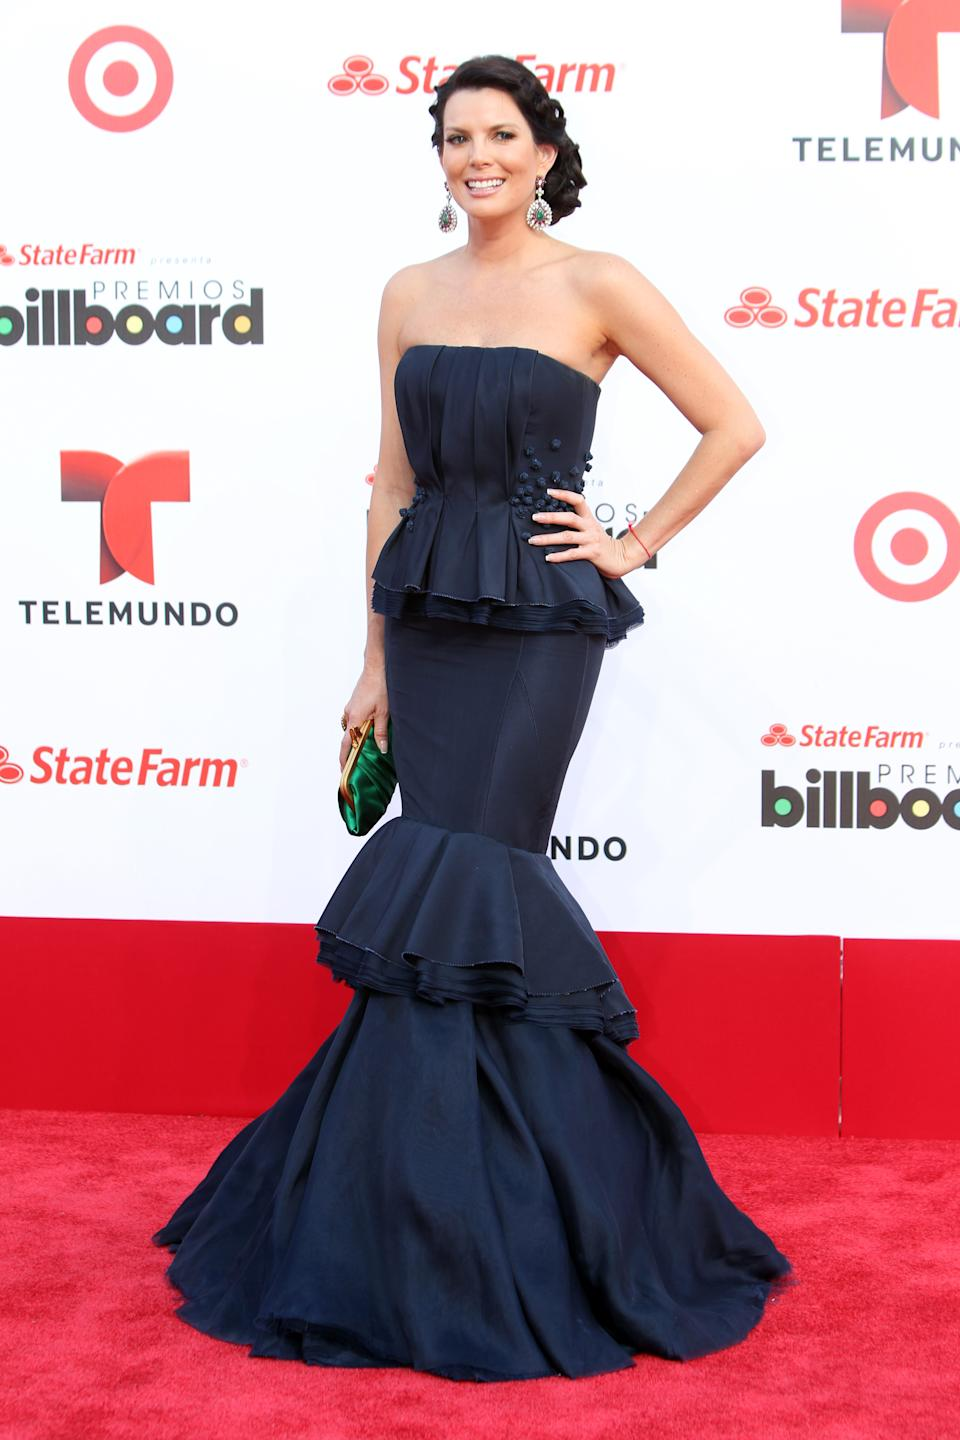 Colombia actress Maritza Rodriguez arrives at the Latin Billboard Awards in Coral Gables, Fla. Thursday, April 25, 2013. (Photo by Carlo Allegri/Invision/AP)